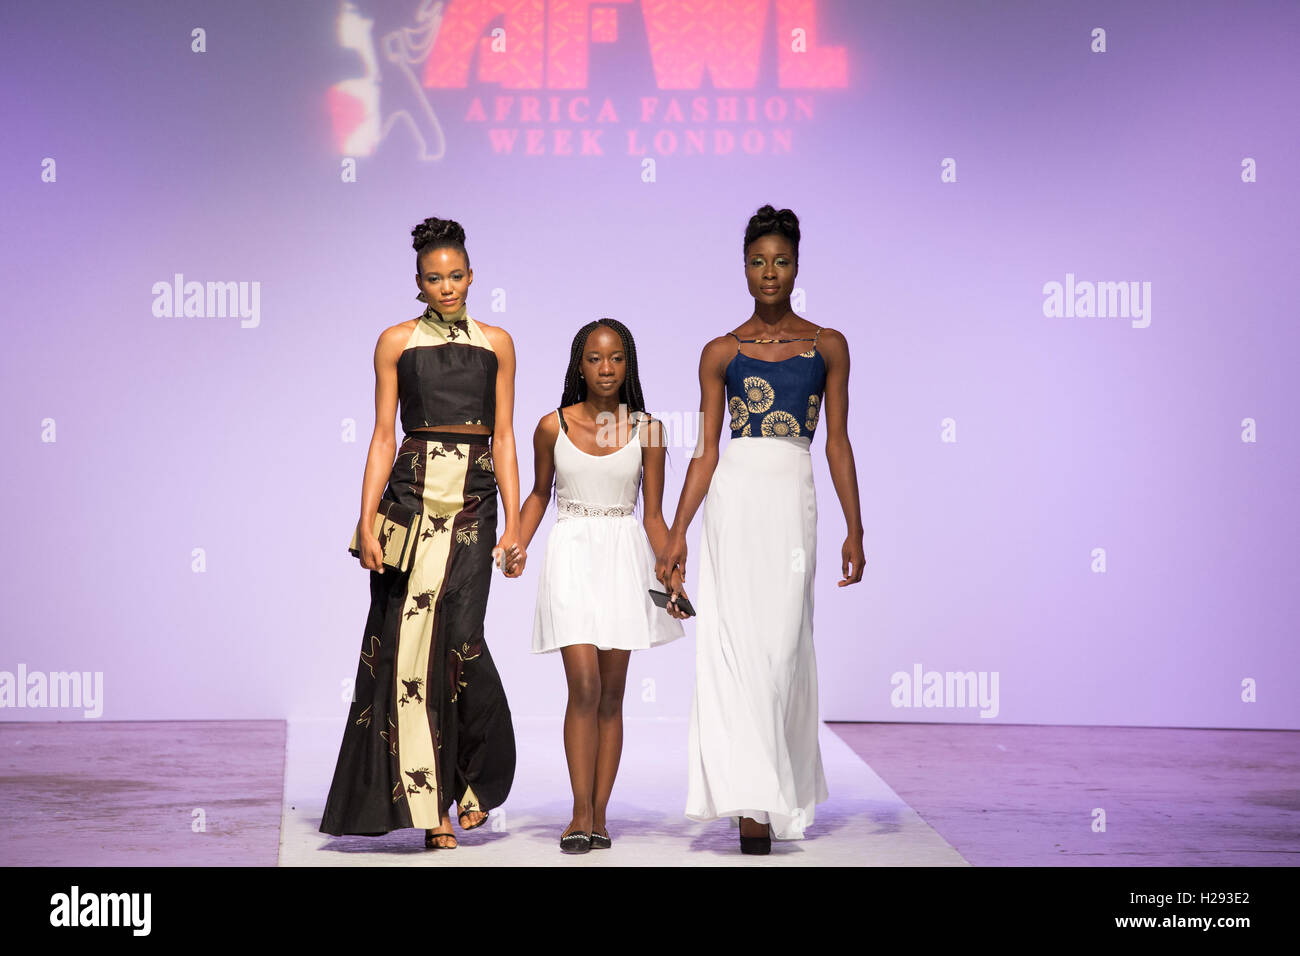 Tiza designer walking down th runway with two models who showcased her collection at the Africa Fashion Week London. - Stock Image